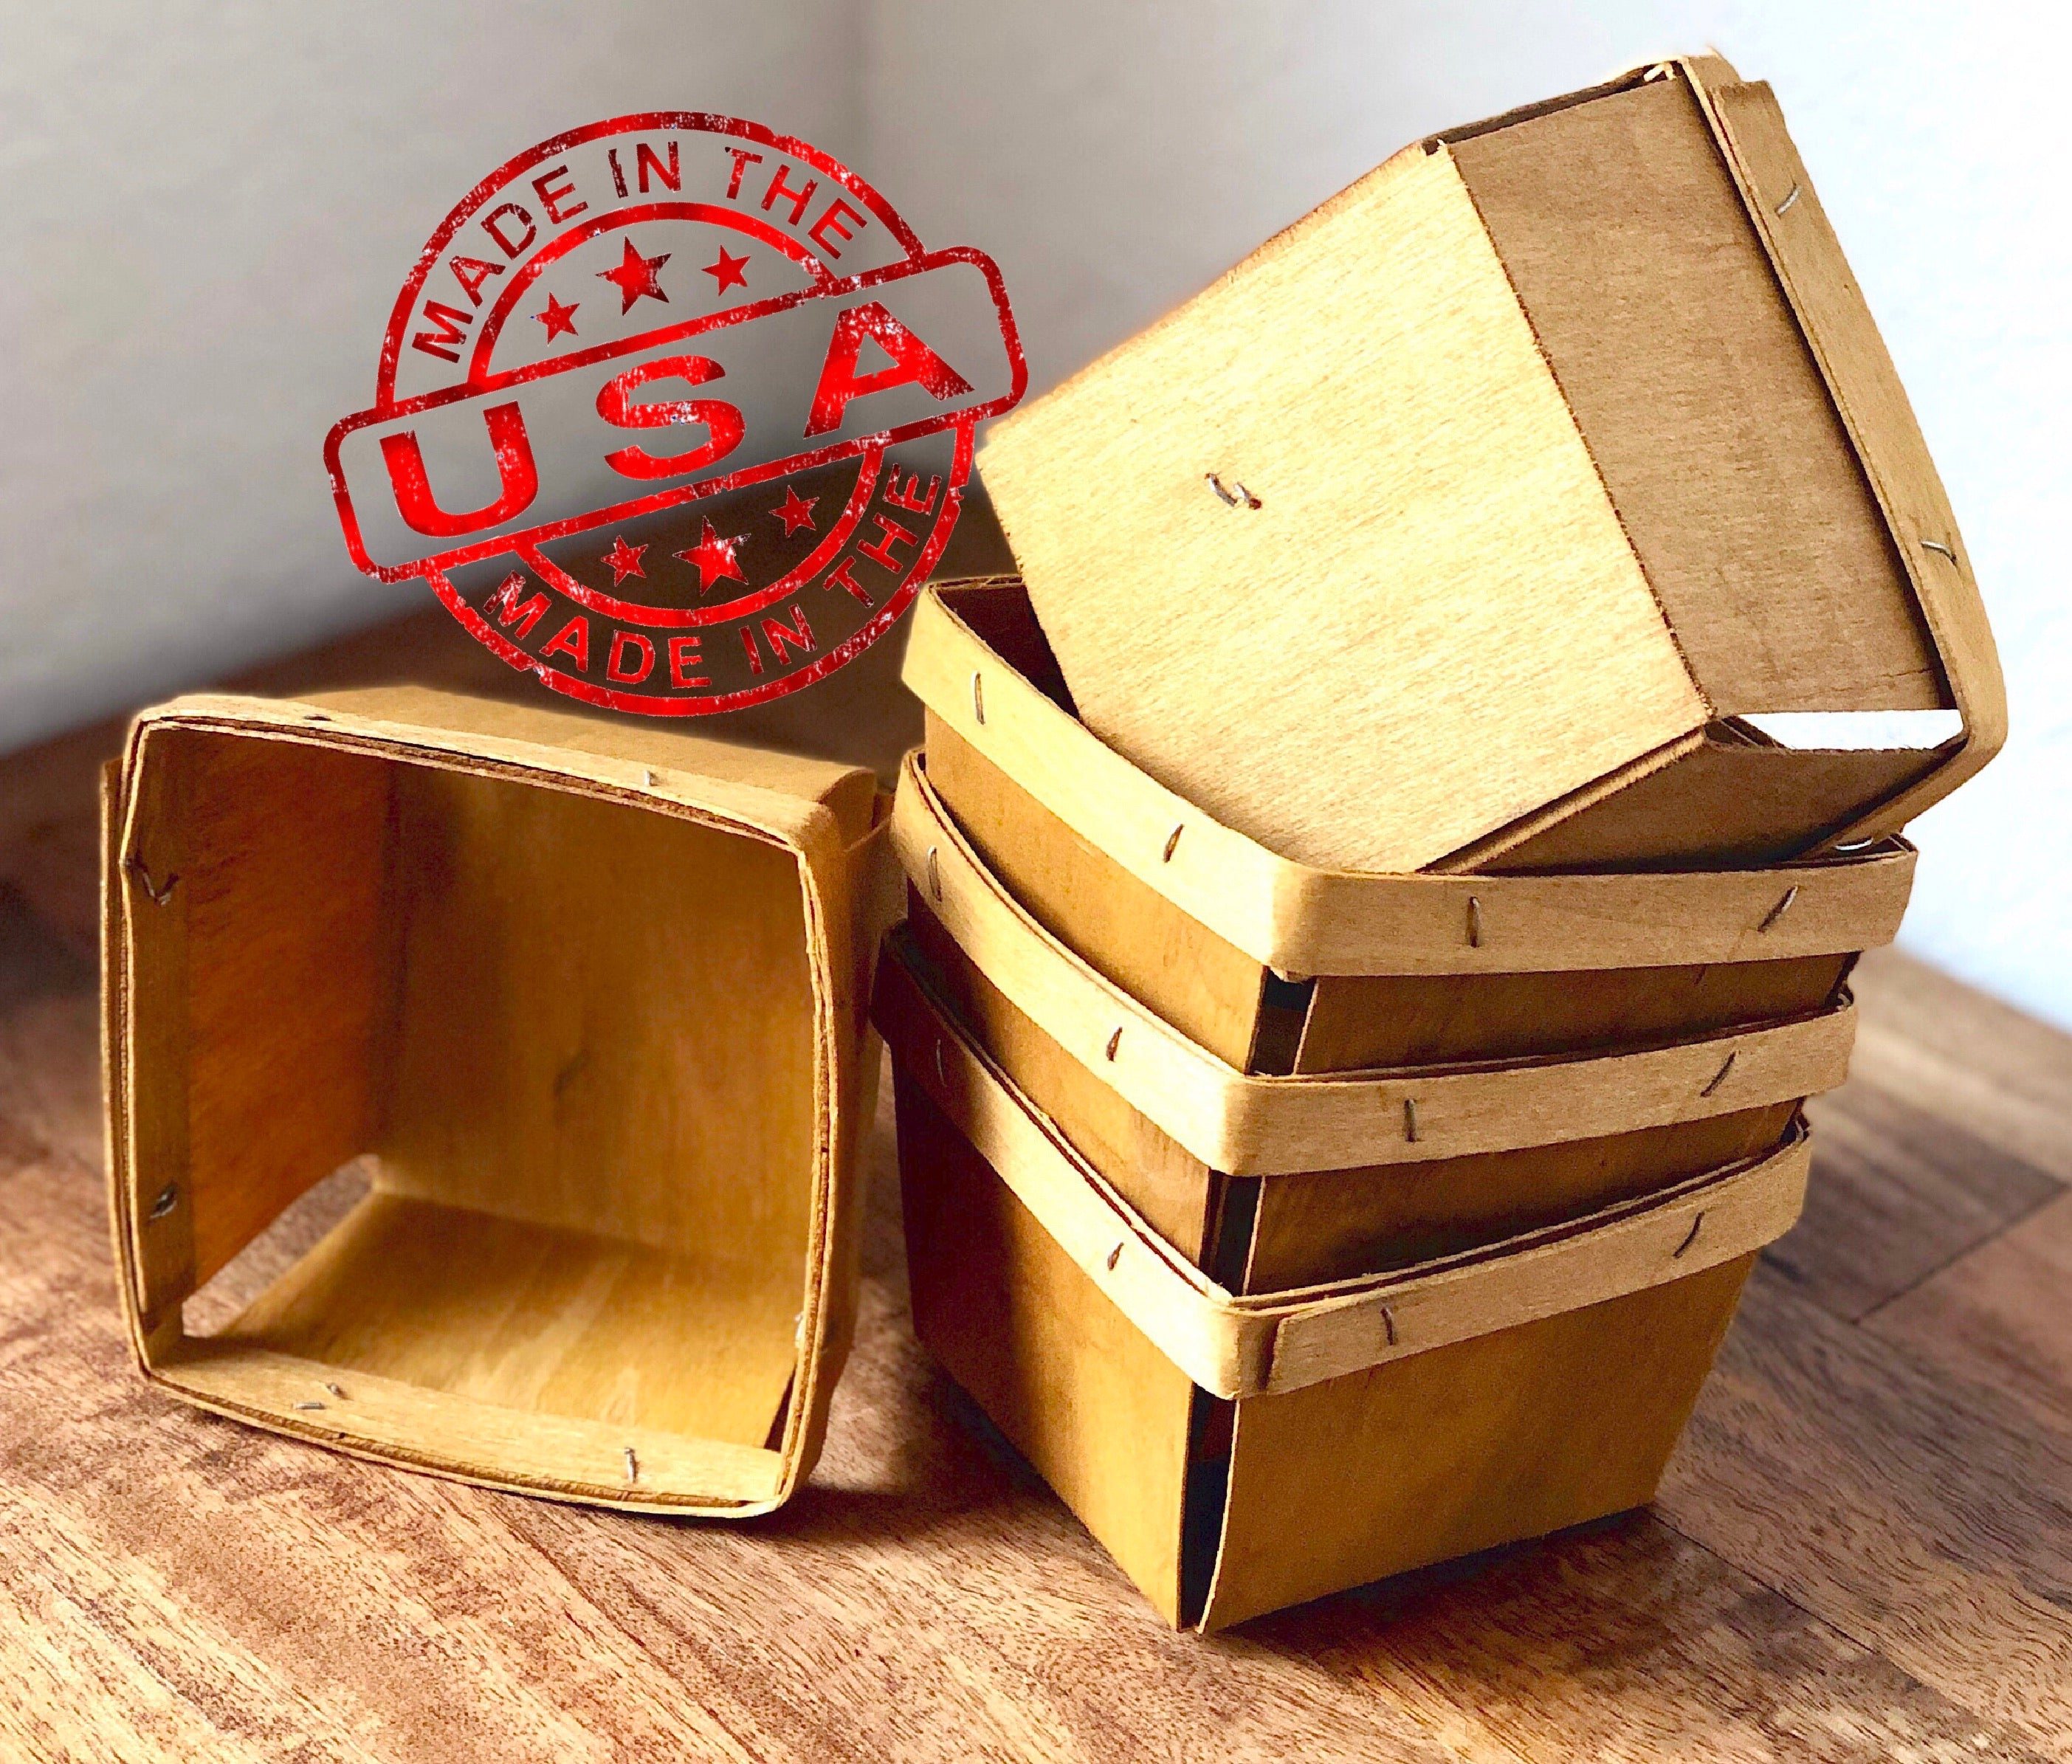 Wood Berry Baskets - Pint Size - Made in USA